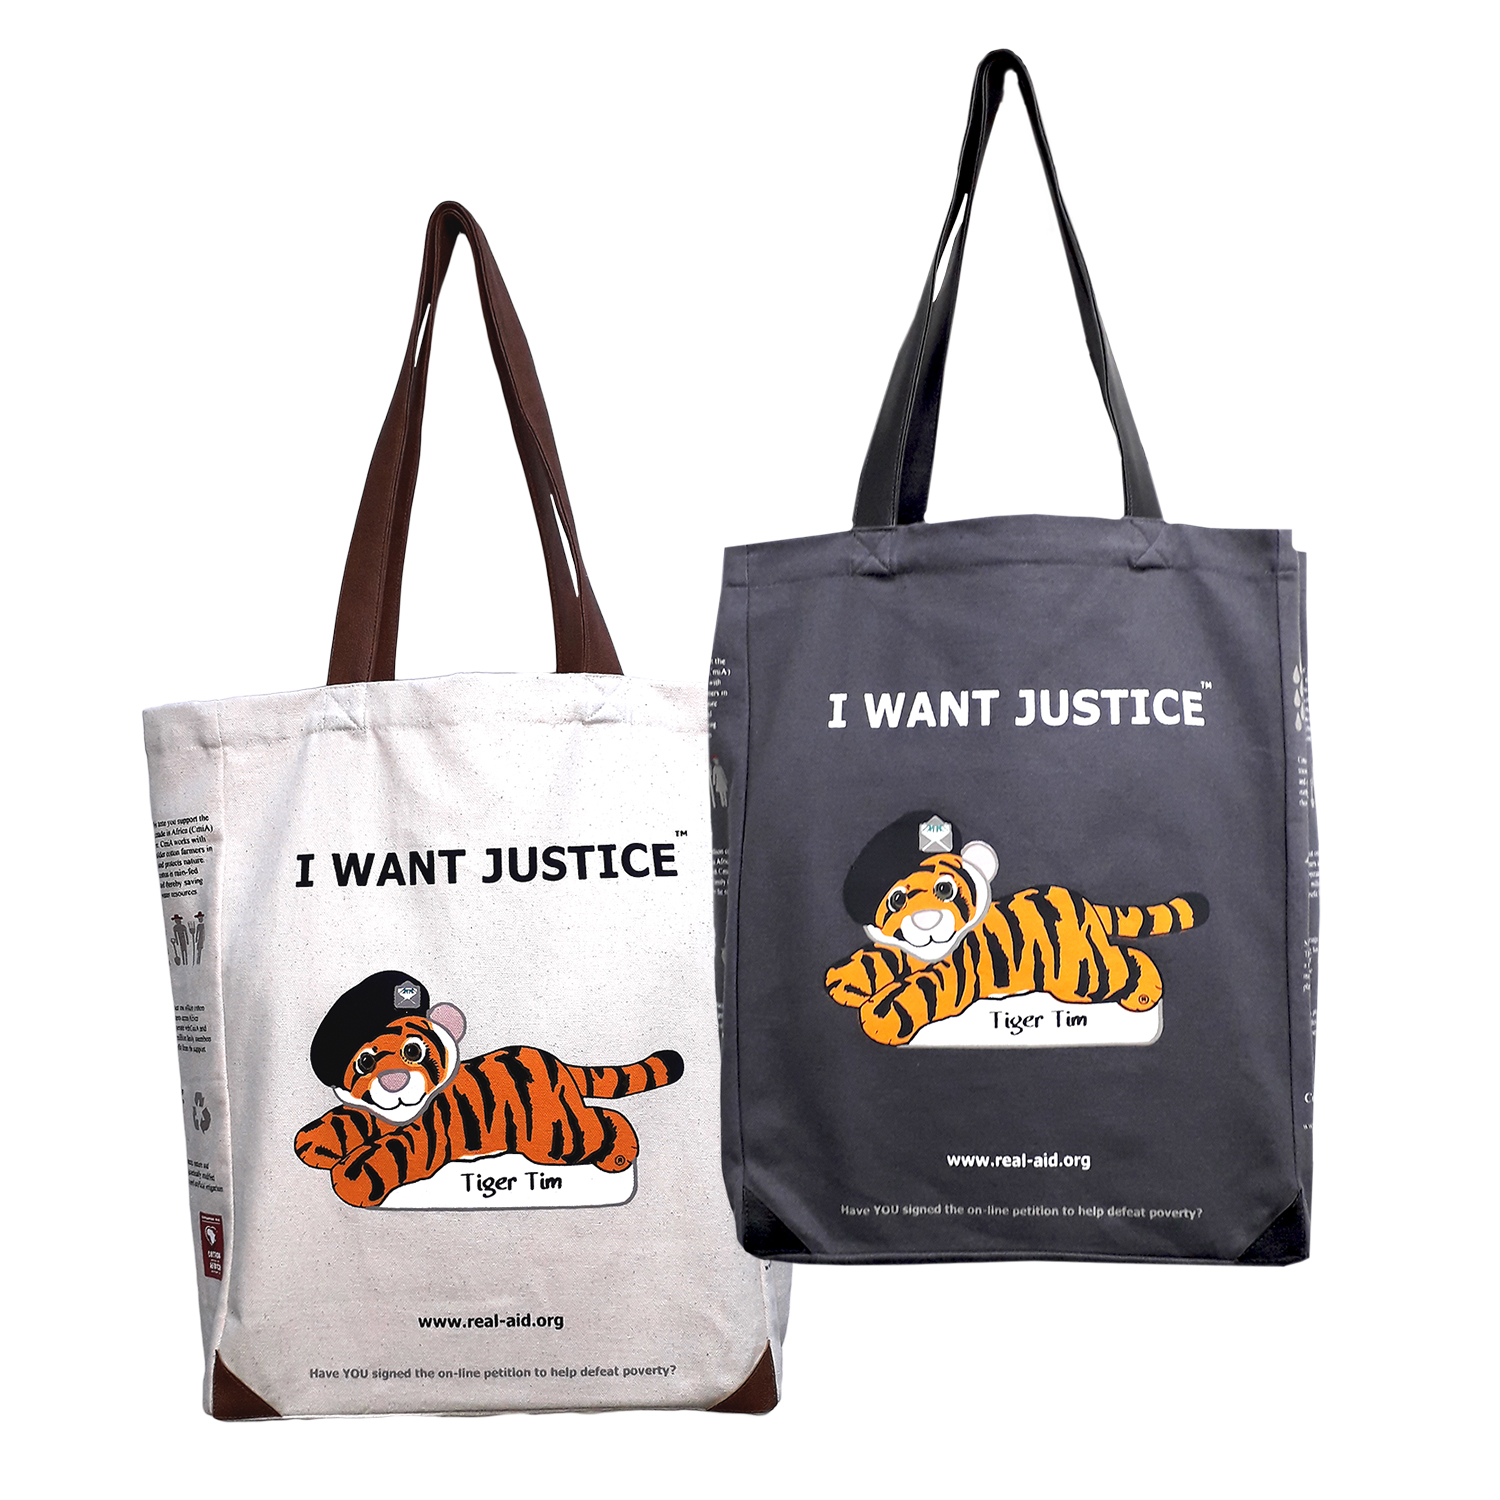 Tiger Tim Tote twin set, Double Slogan, Natural & Charcoal